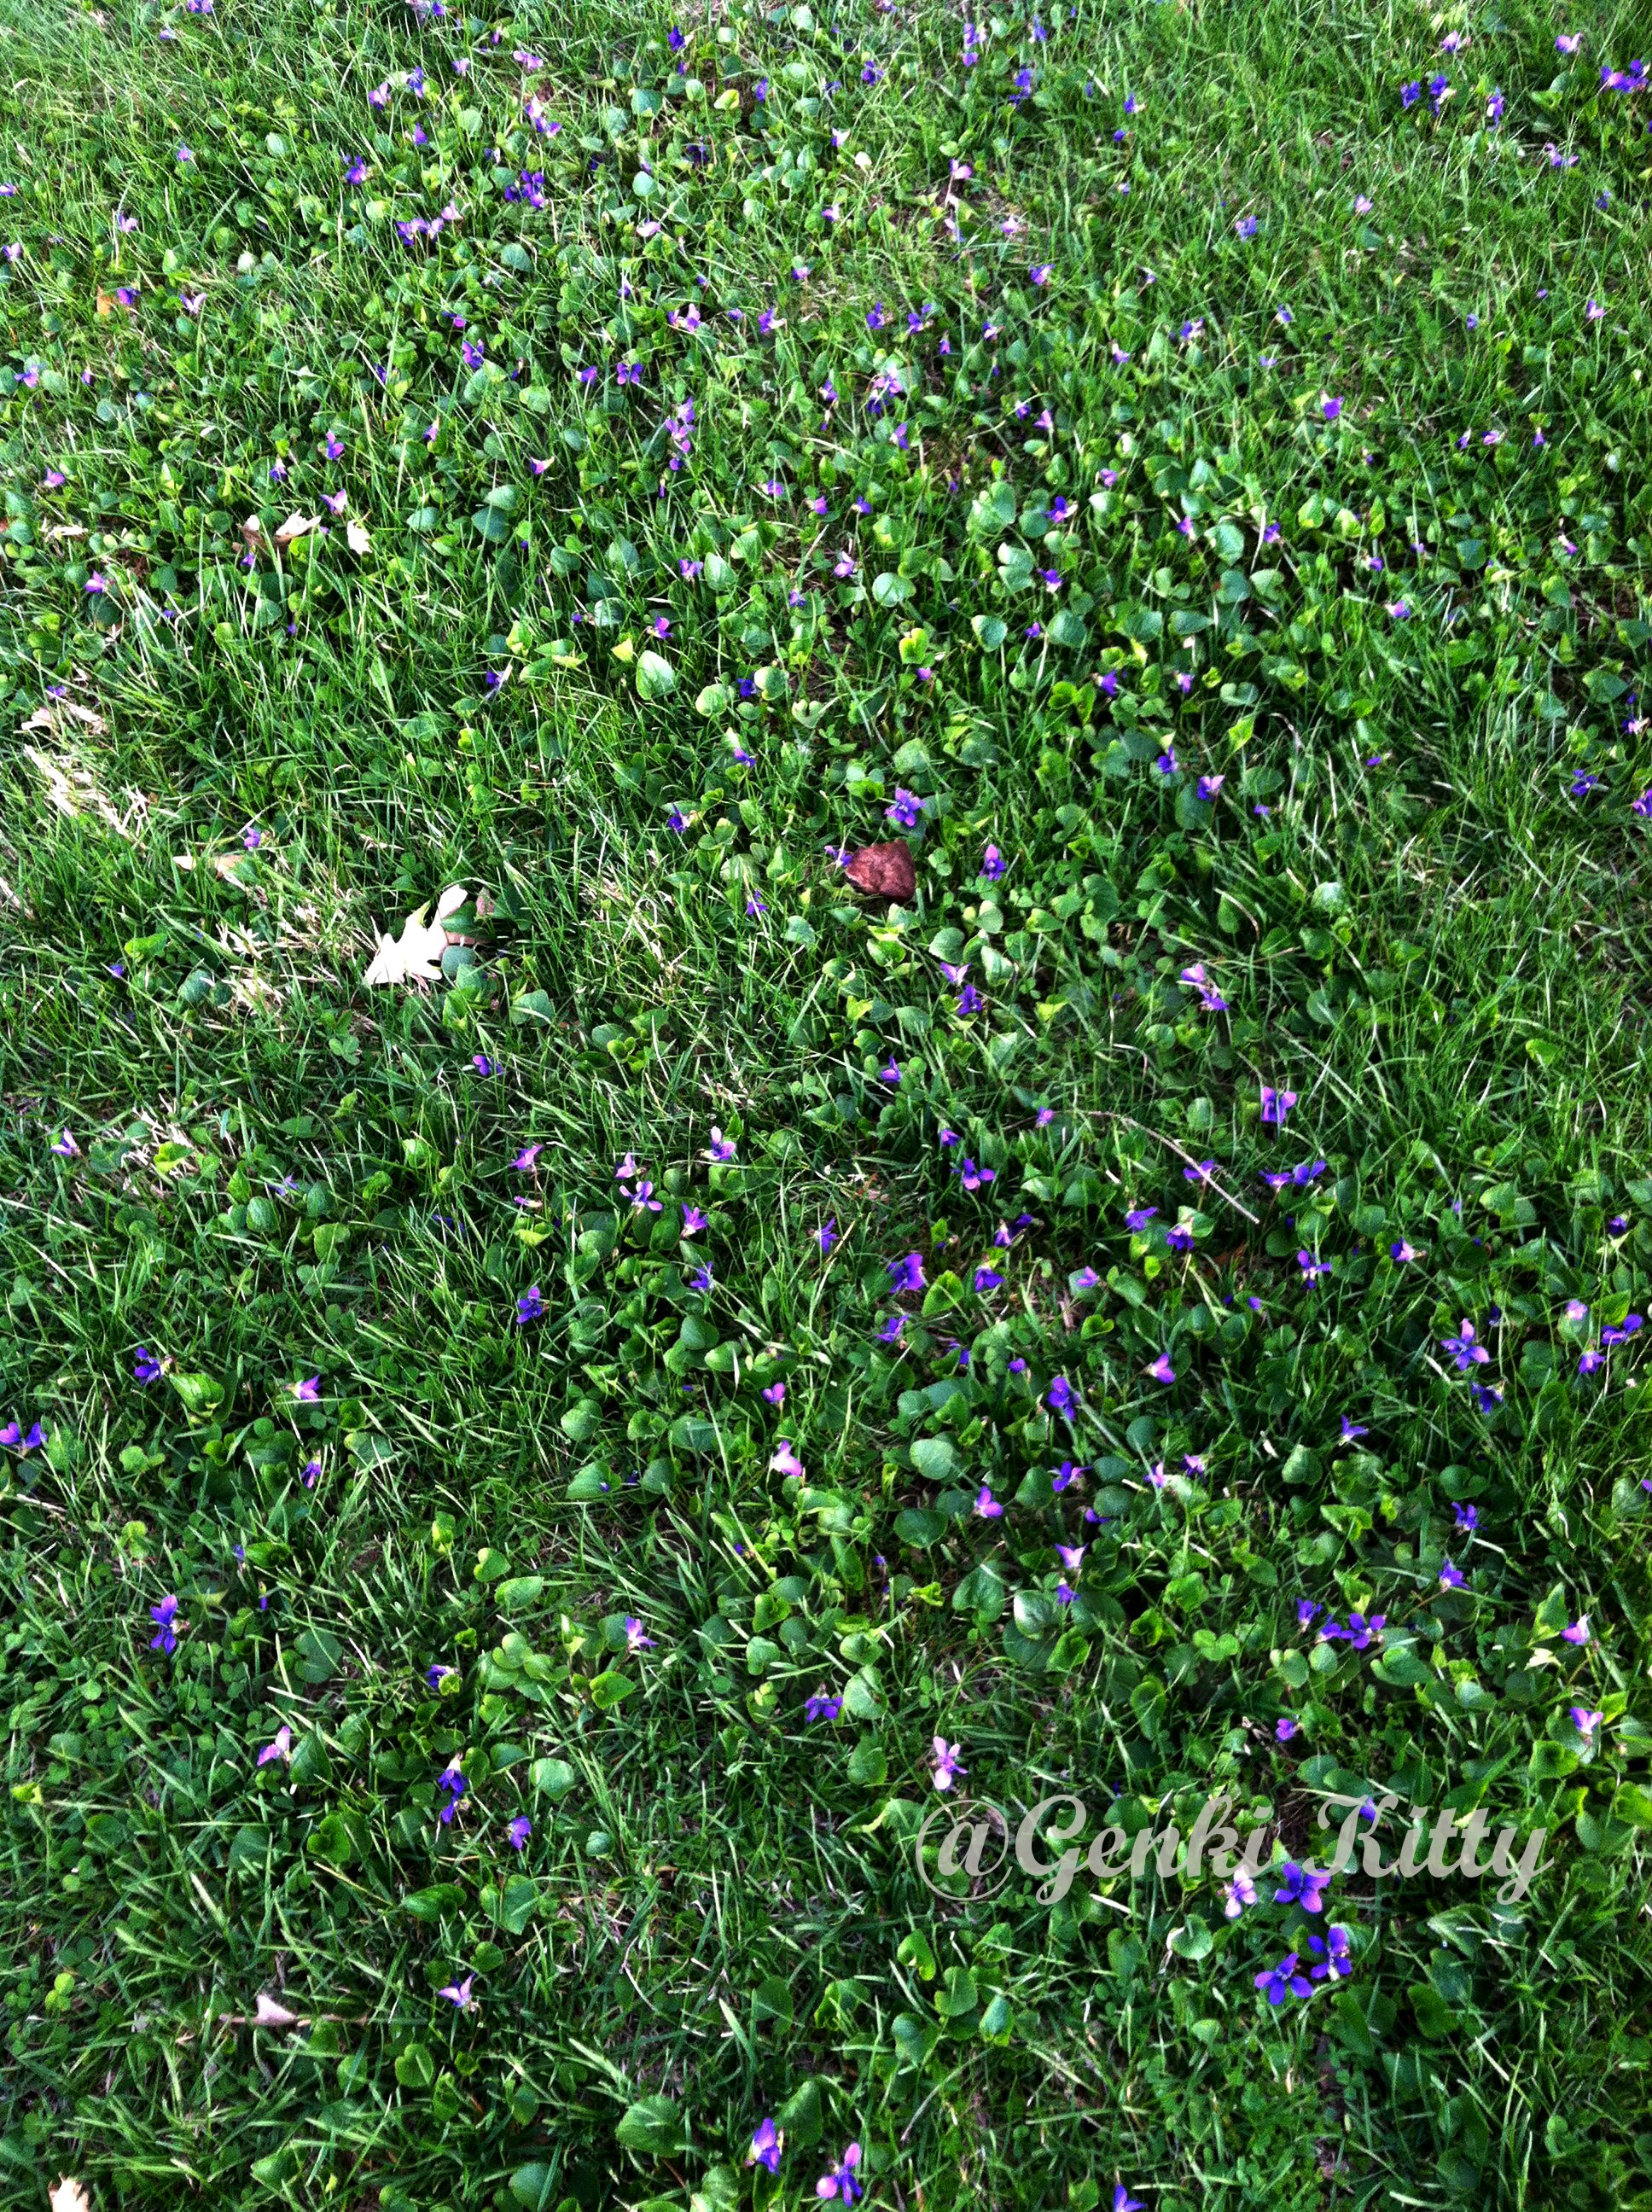 Michigan Gr Lawn Covered In Tiny Purple Flowers From Creeping Charlie Weed It S An Invasive